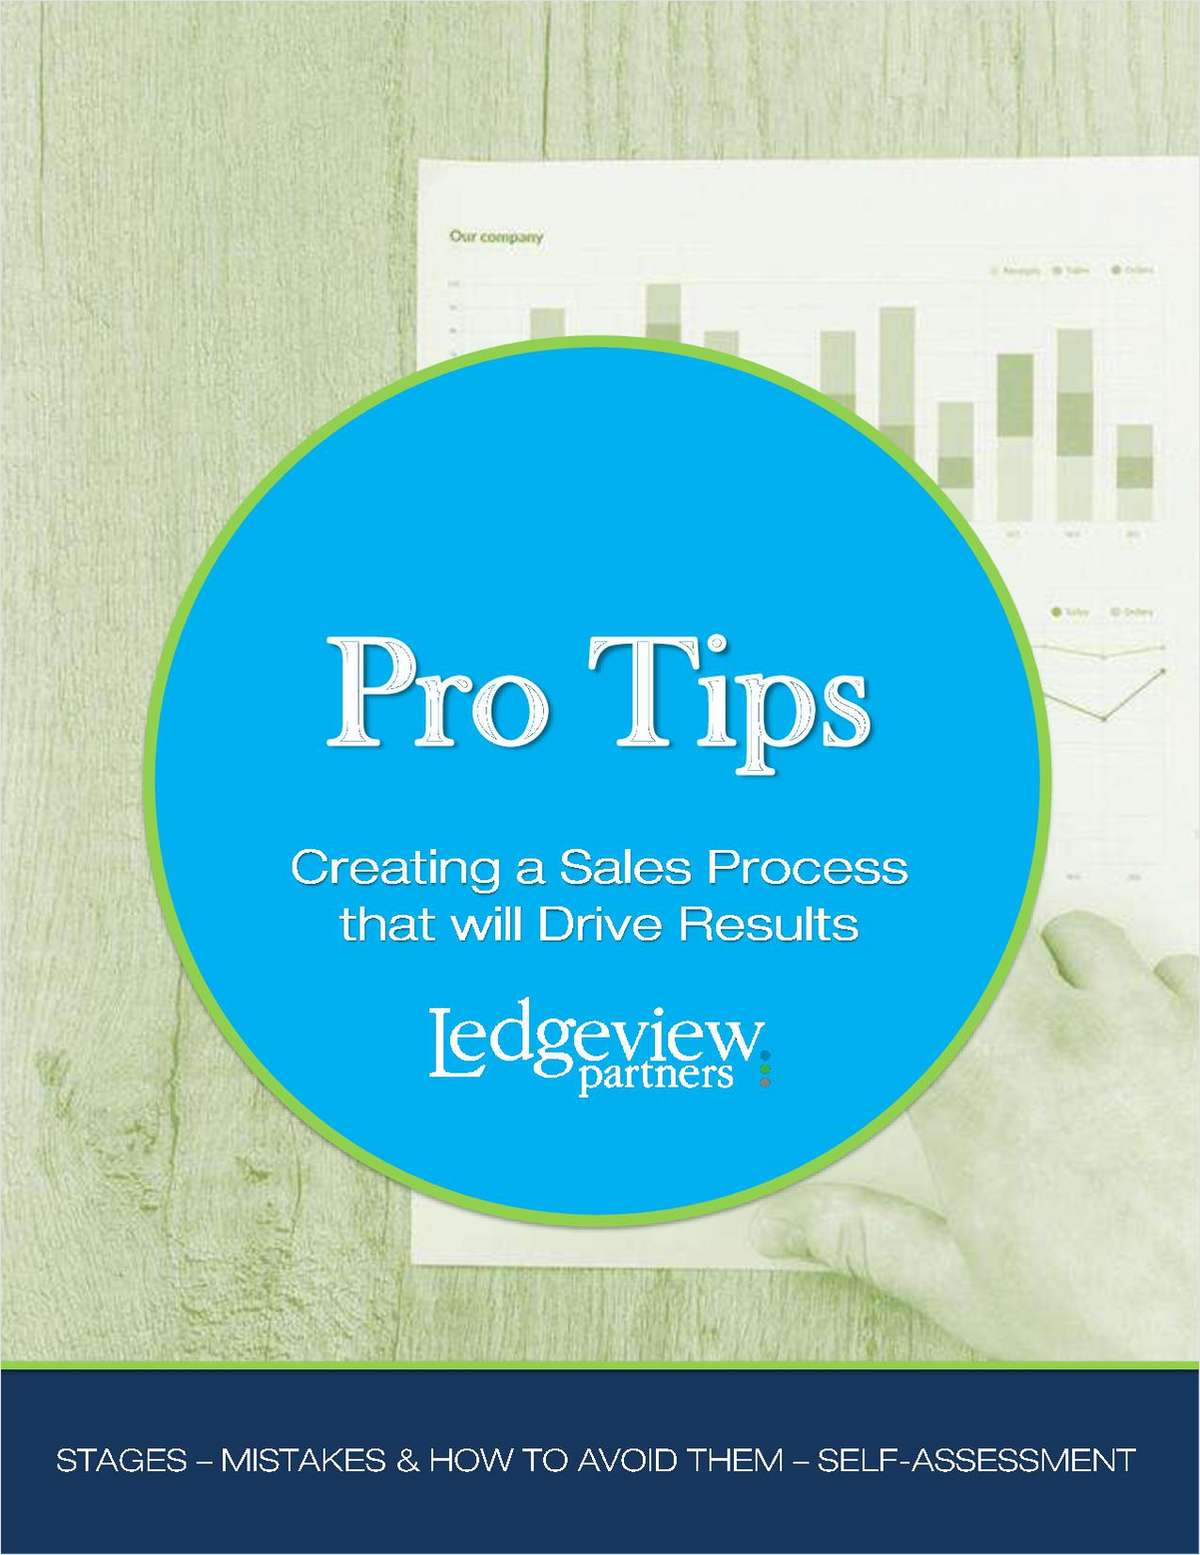 Pro Tips on Creating a Sales Process that will Drive Results